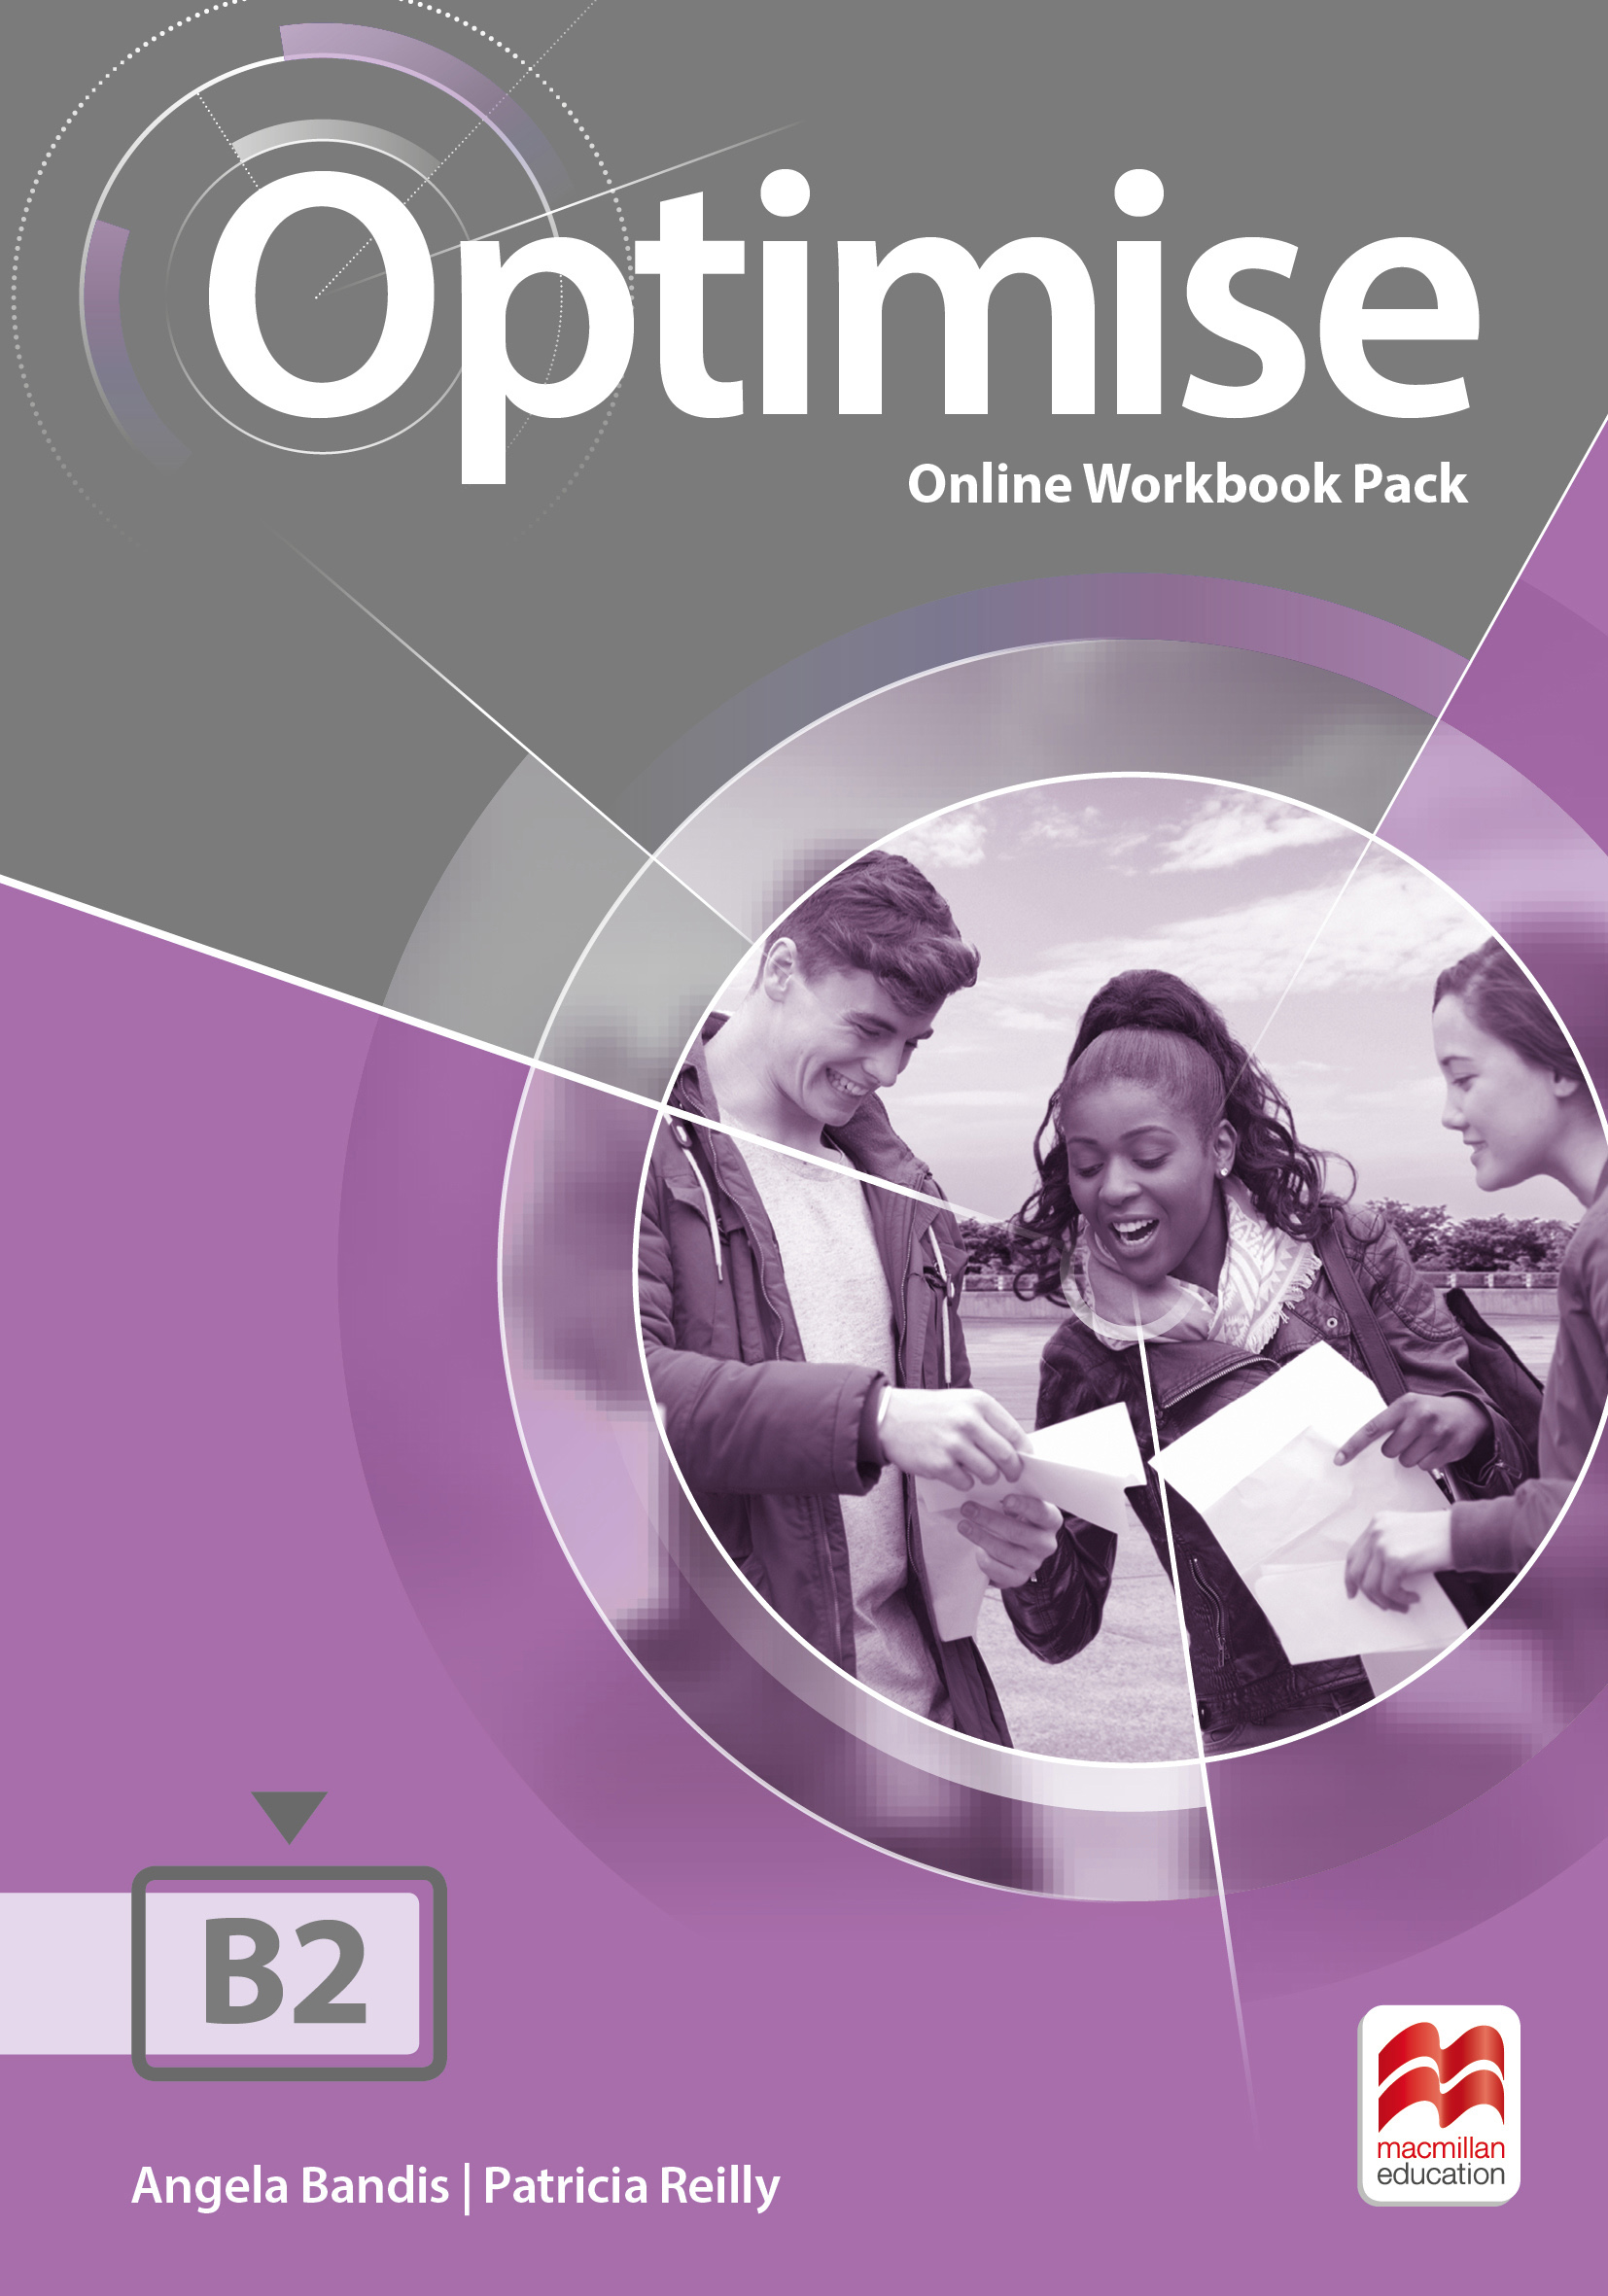 Optimise B2 Online Workbook Pack